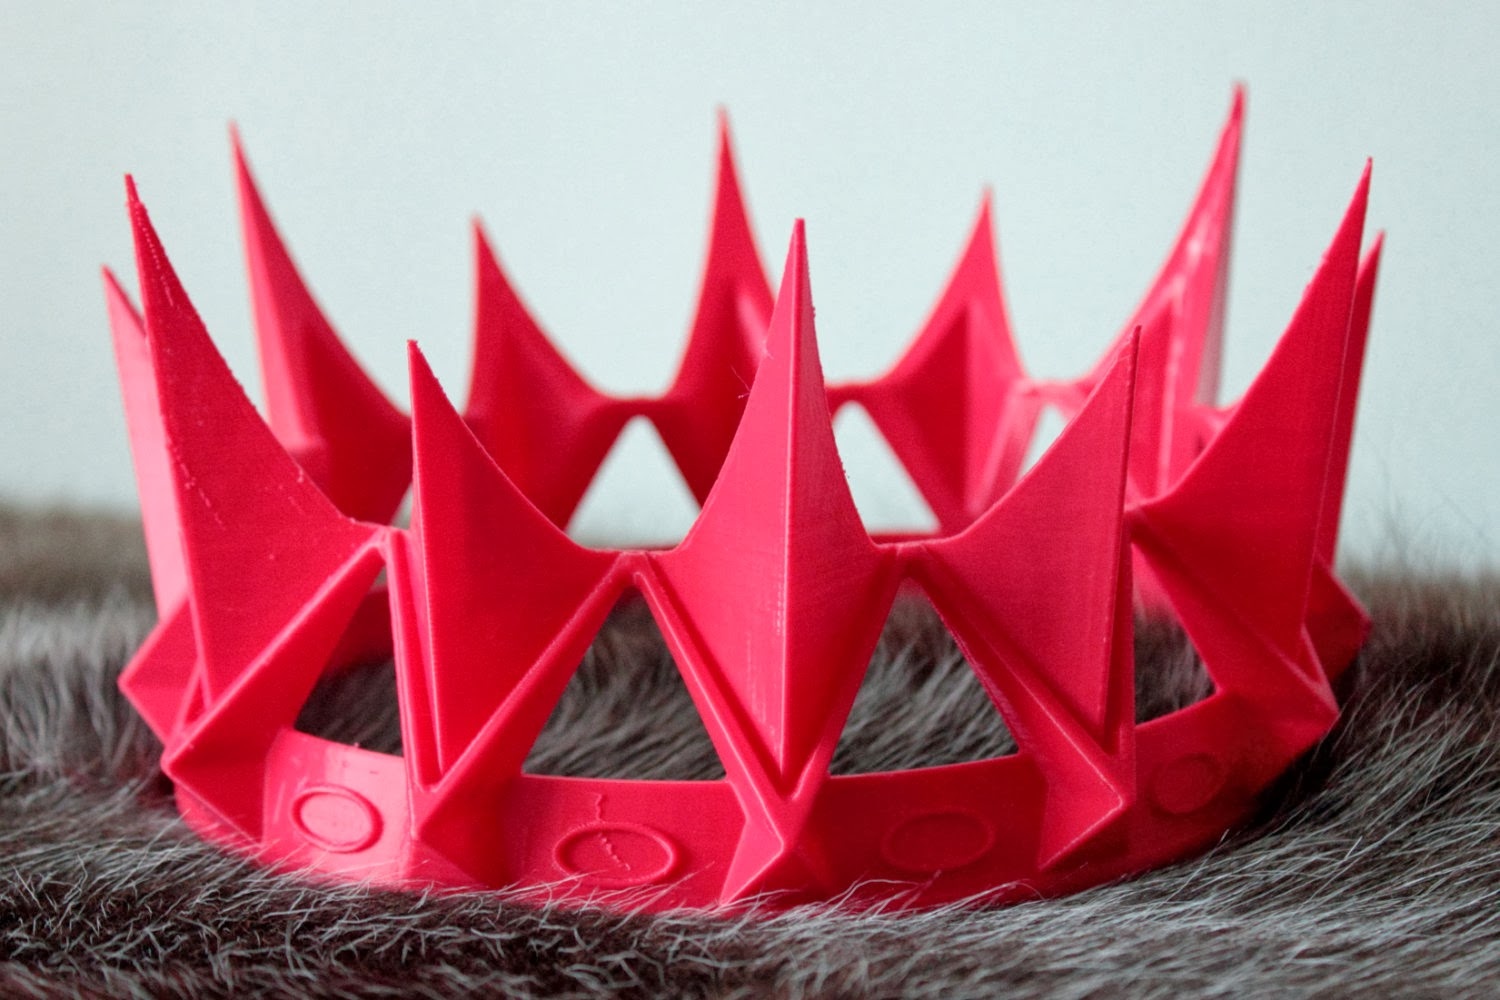 Concrete And Nail Polish Purchase Your Very Own 3d Printed Crown